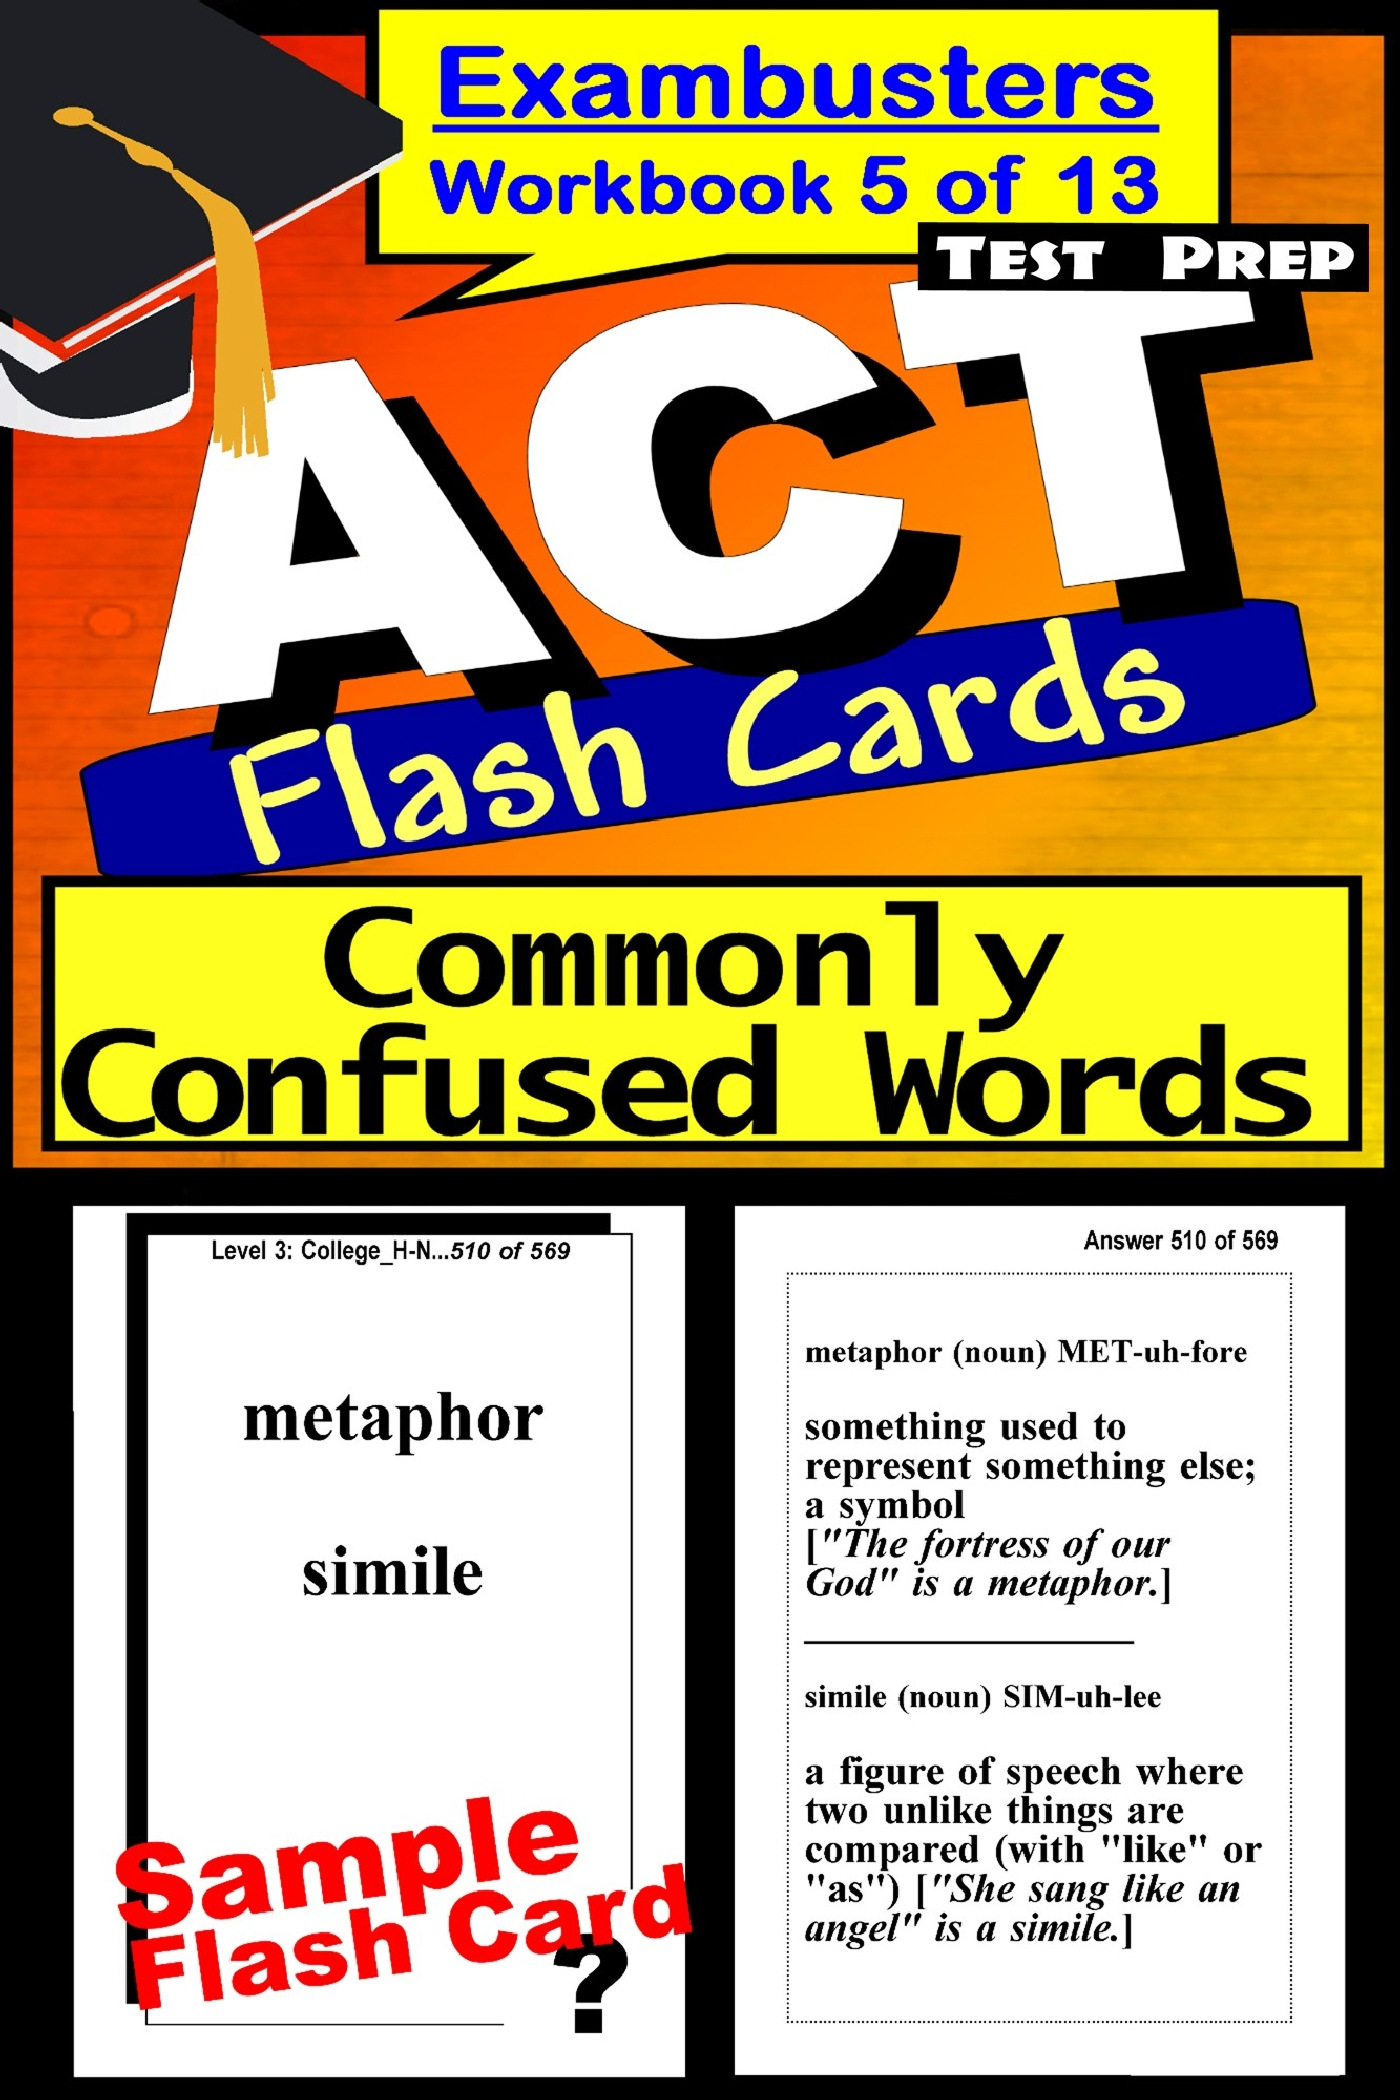 ACT Test Prep Commonly Confused Words Review--Exambusters Flash Cards--Workbook 5 of 13: ACT Exam Study Guide